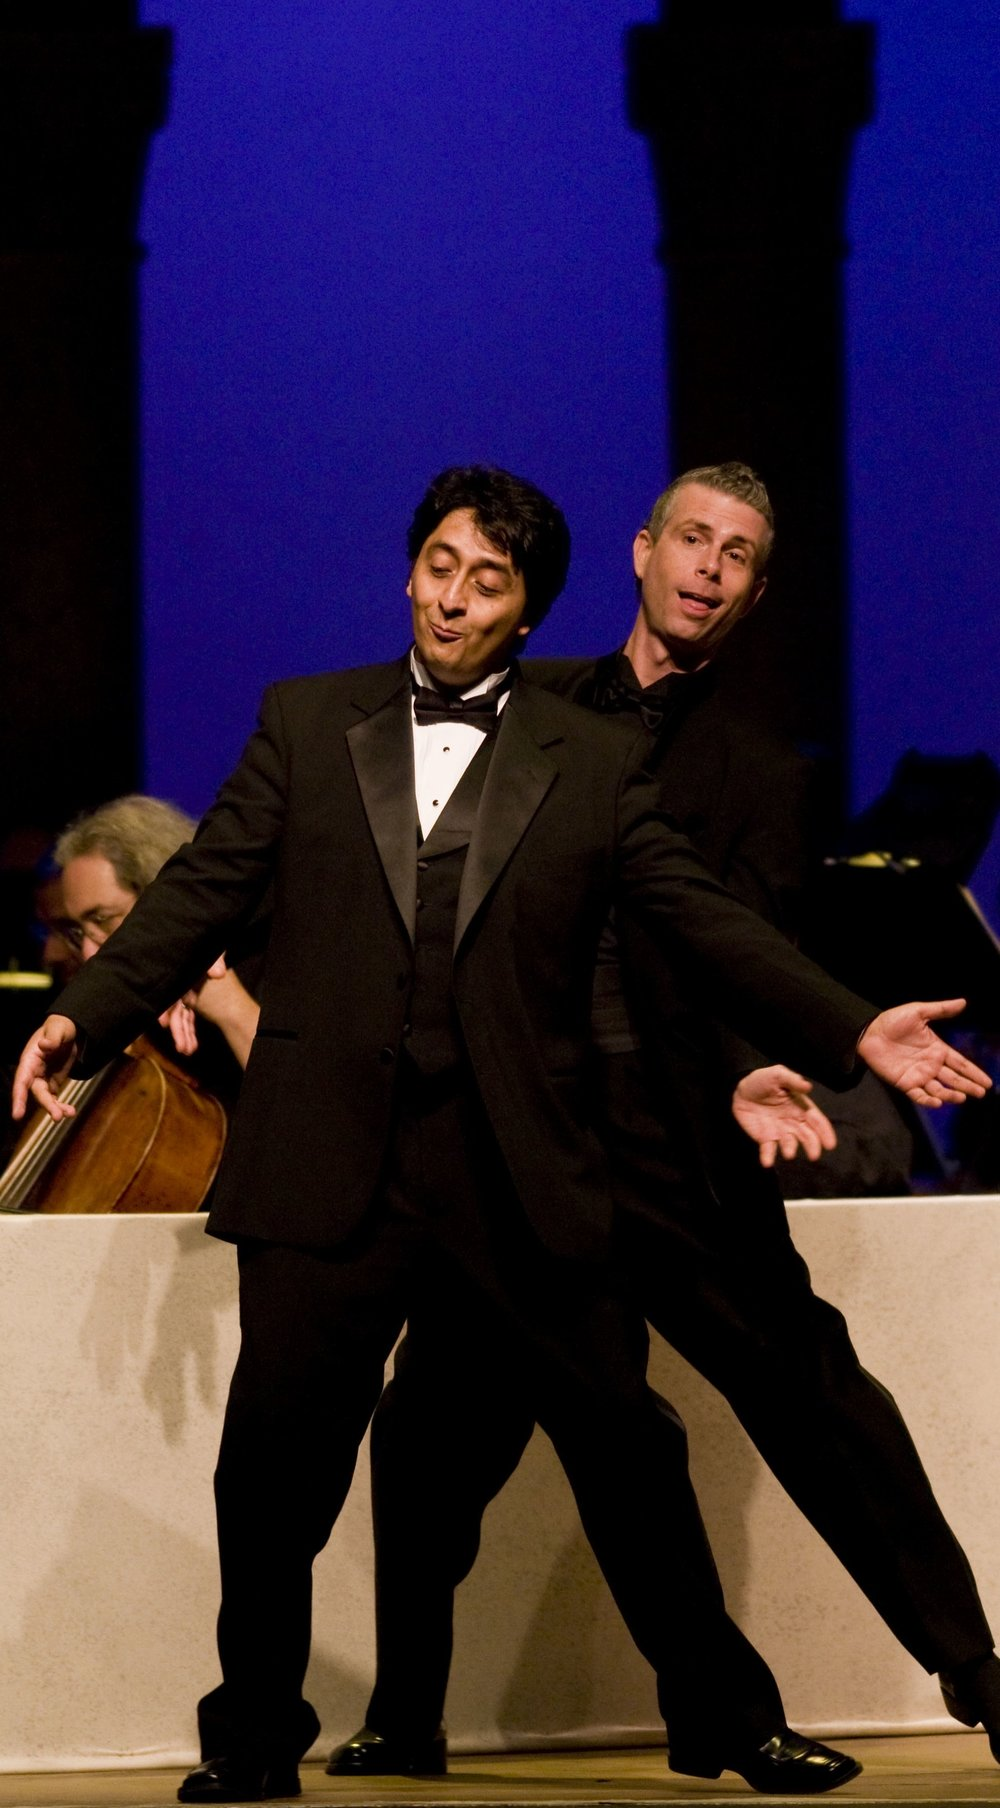 Ricardo Herrera and Daniel Mobbs in Il barbiere di Siviglia at Caramoor (photo © Gabe Palacio)